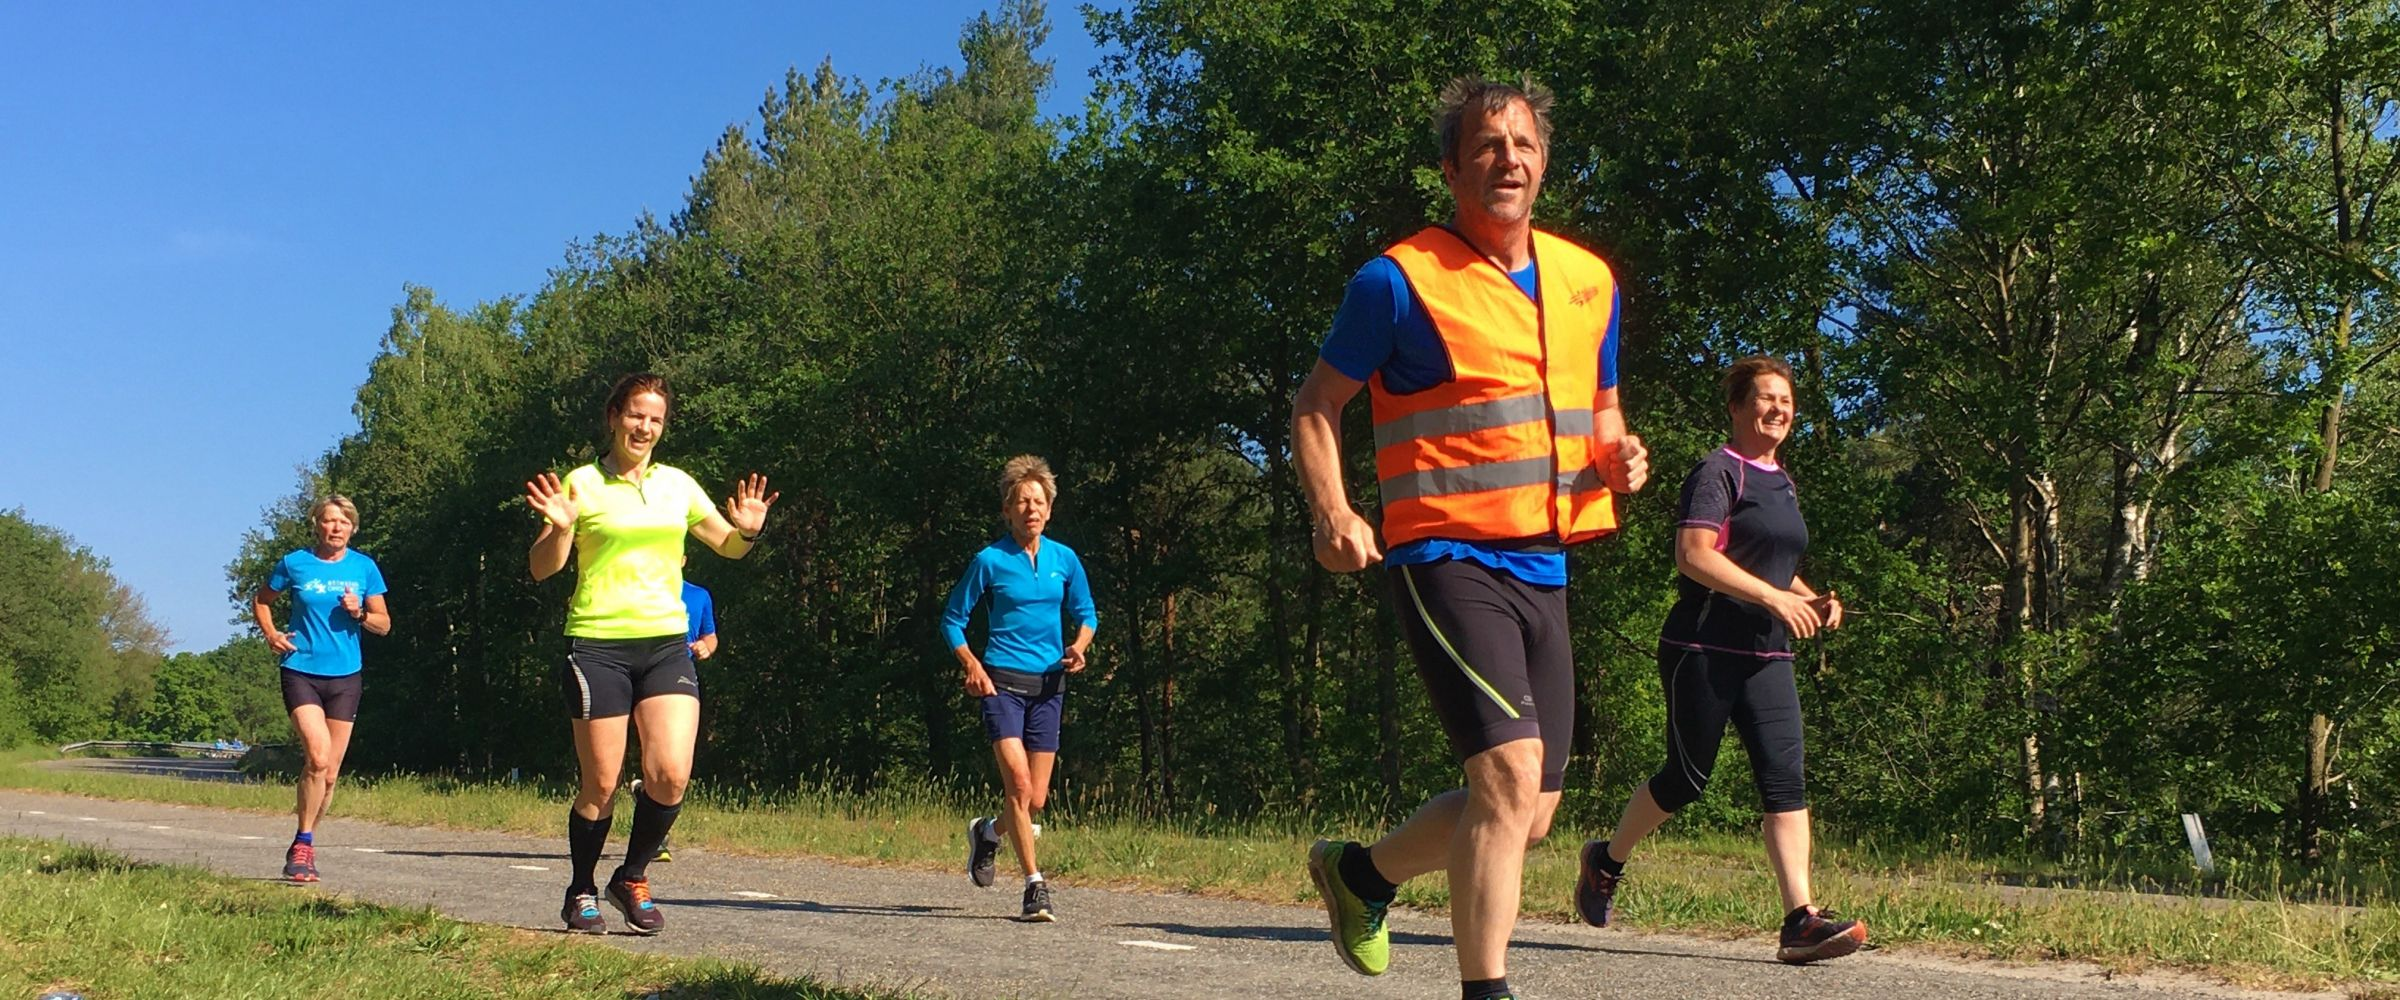 2020-05/2020-05-17-recreanten-ad-van-zelst-22-